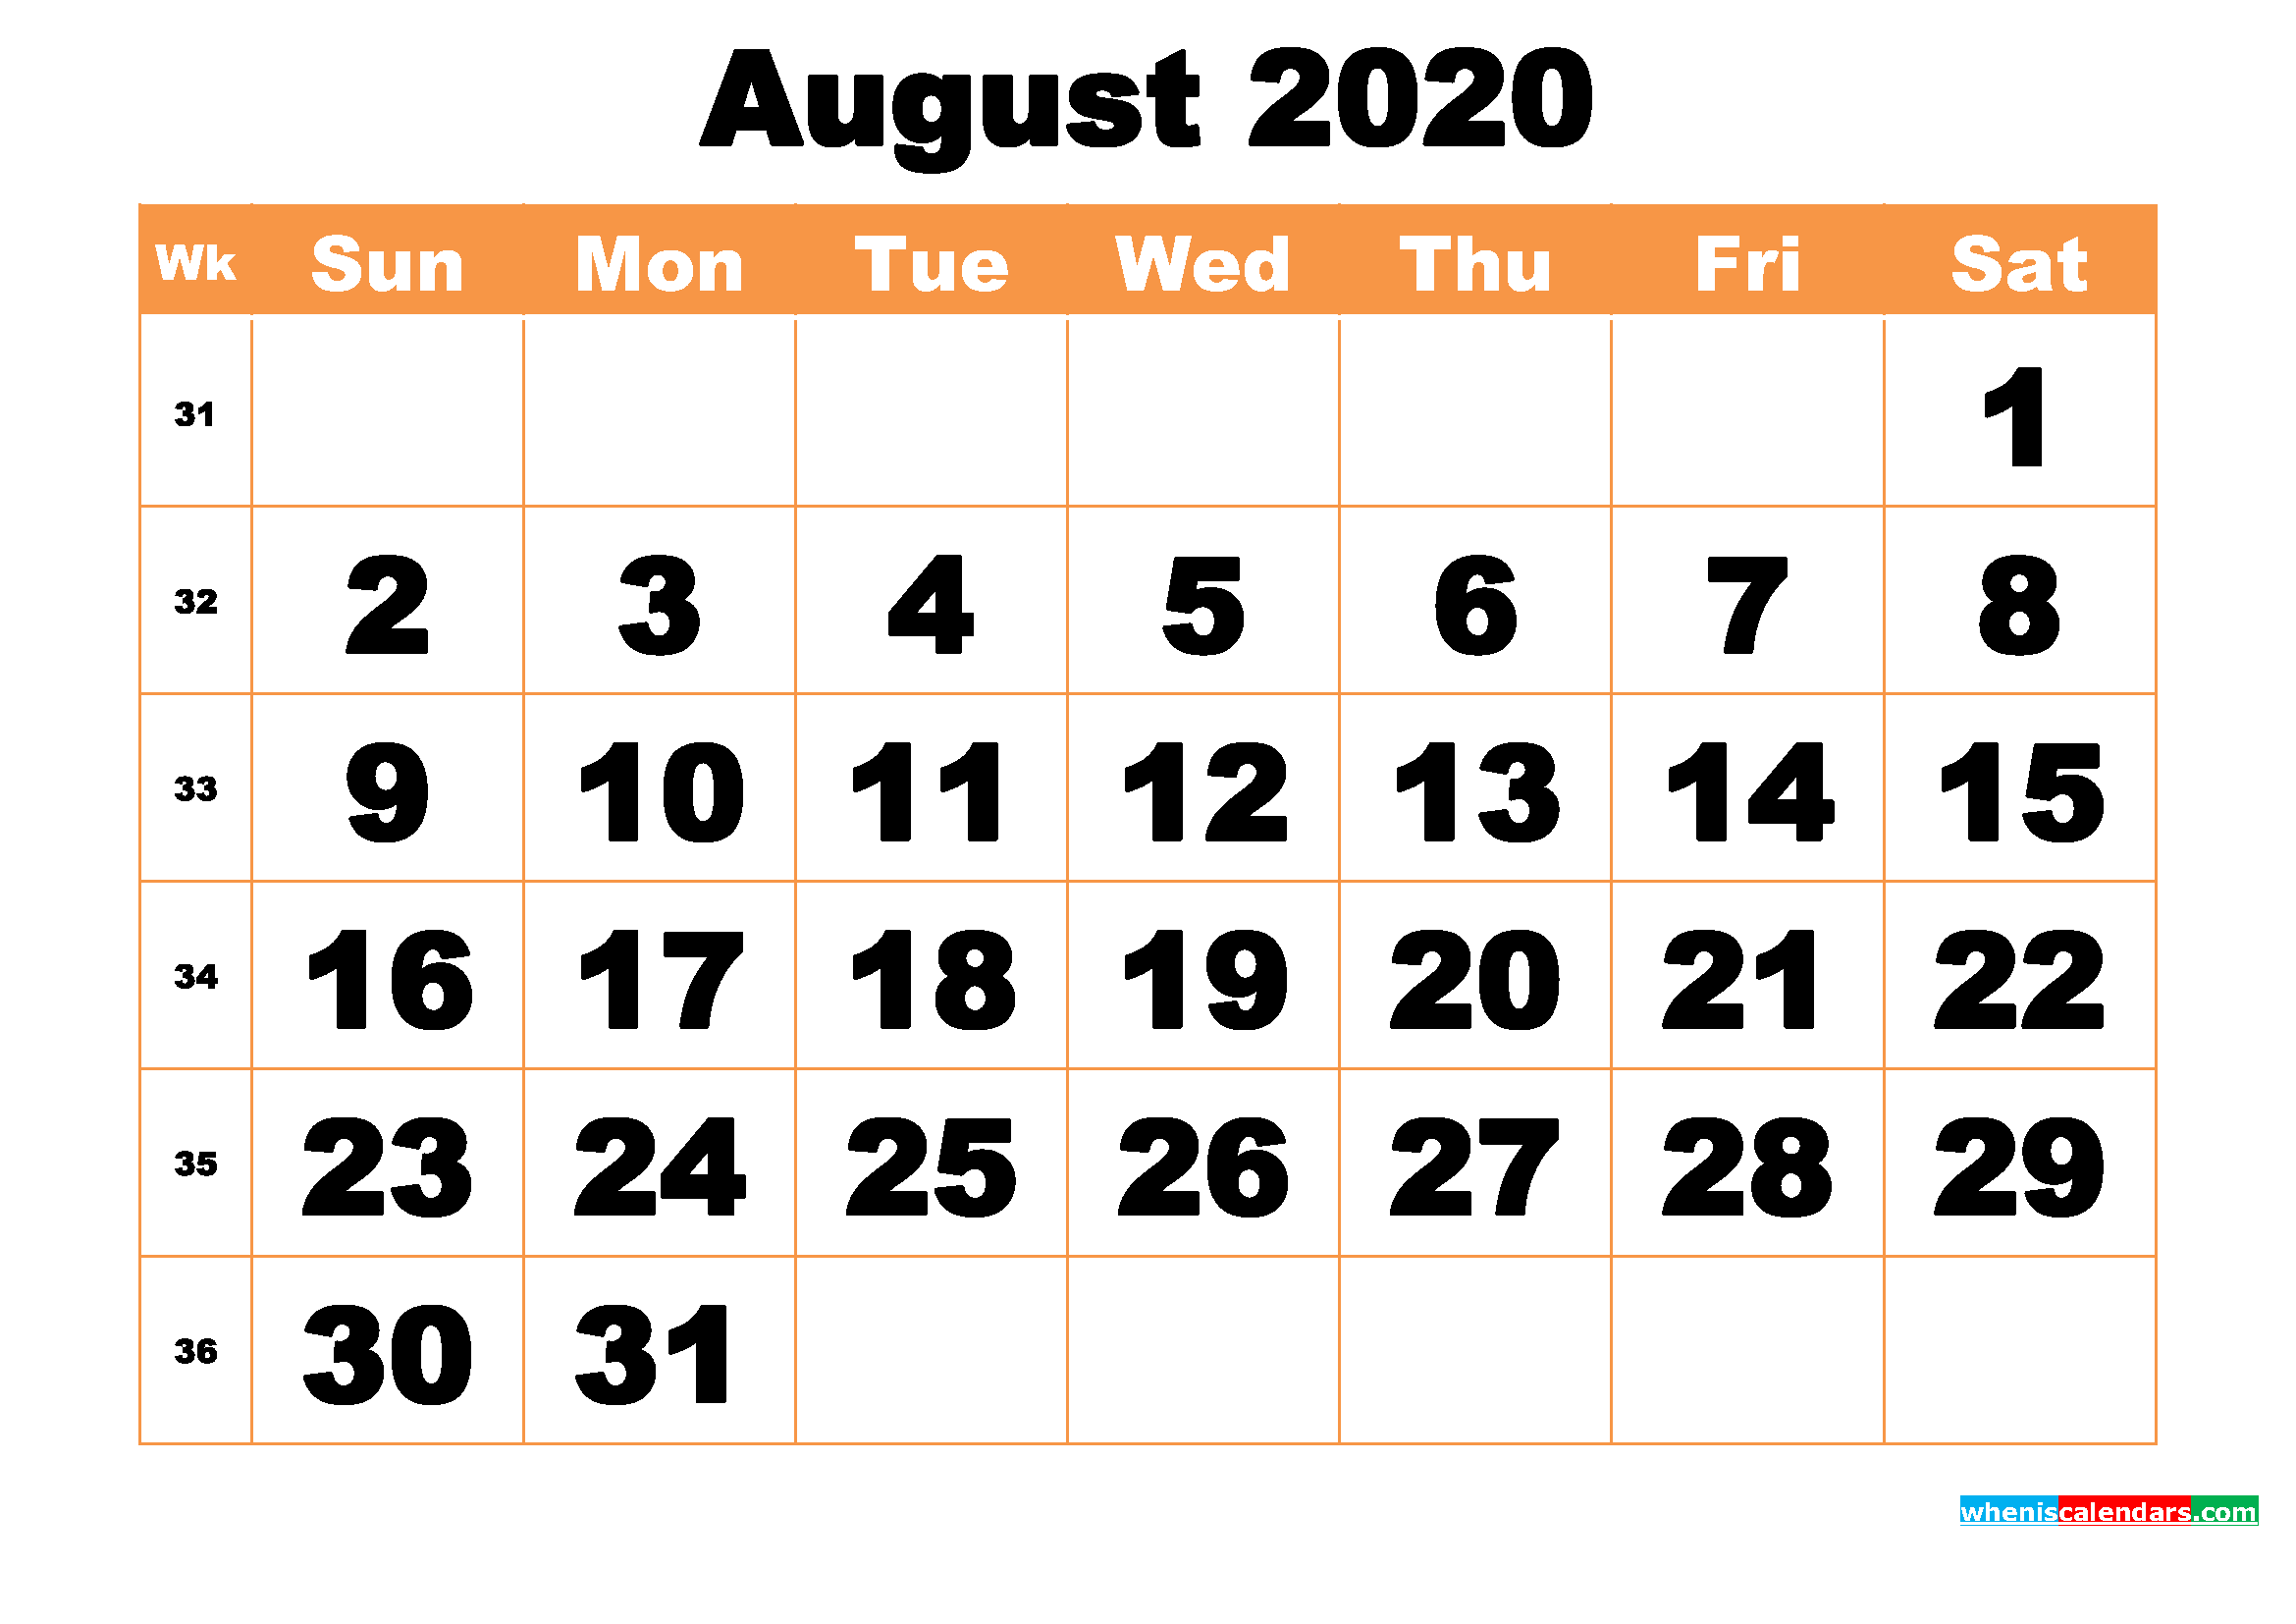 Free Printable August 2020 Calendar Word, PDF, Image